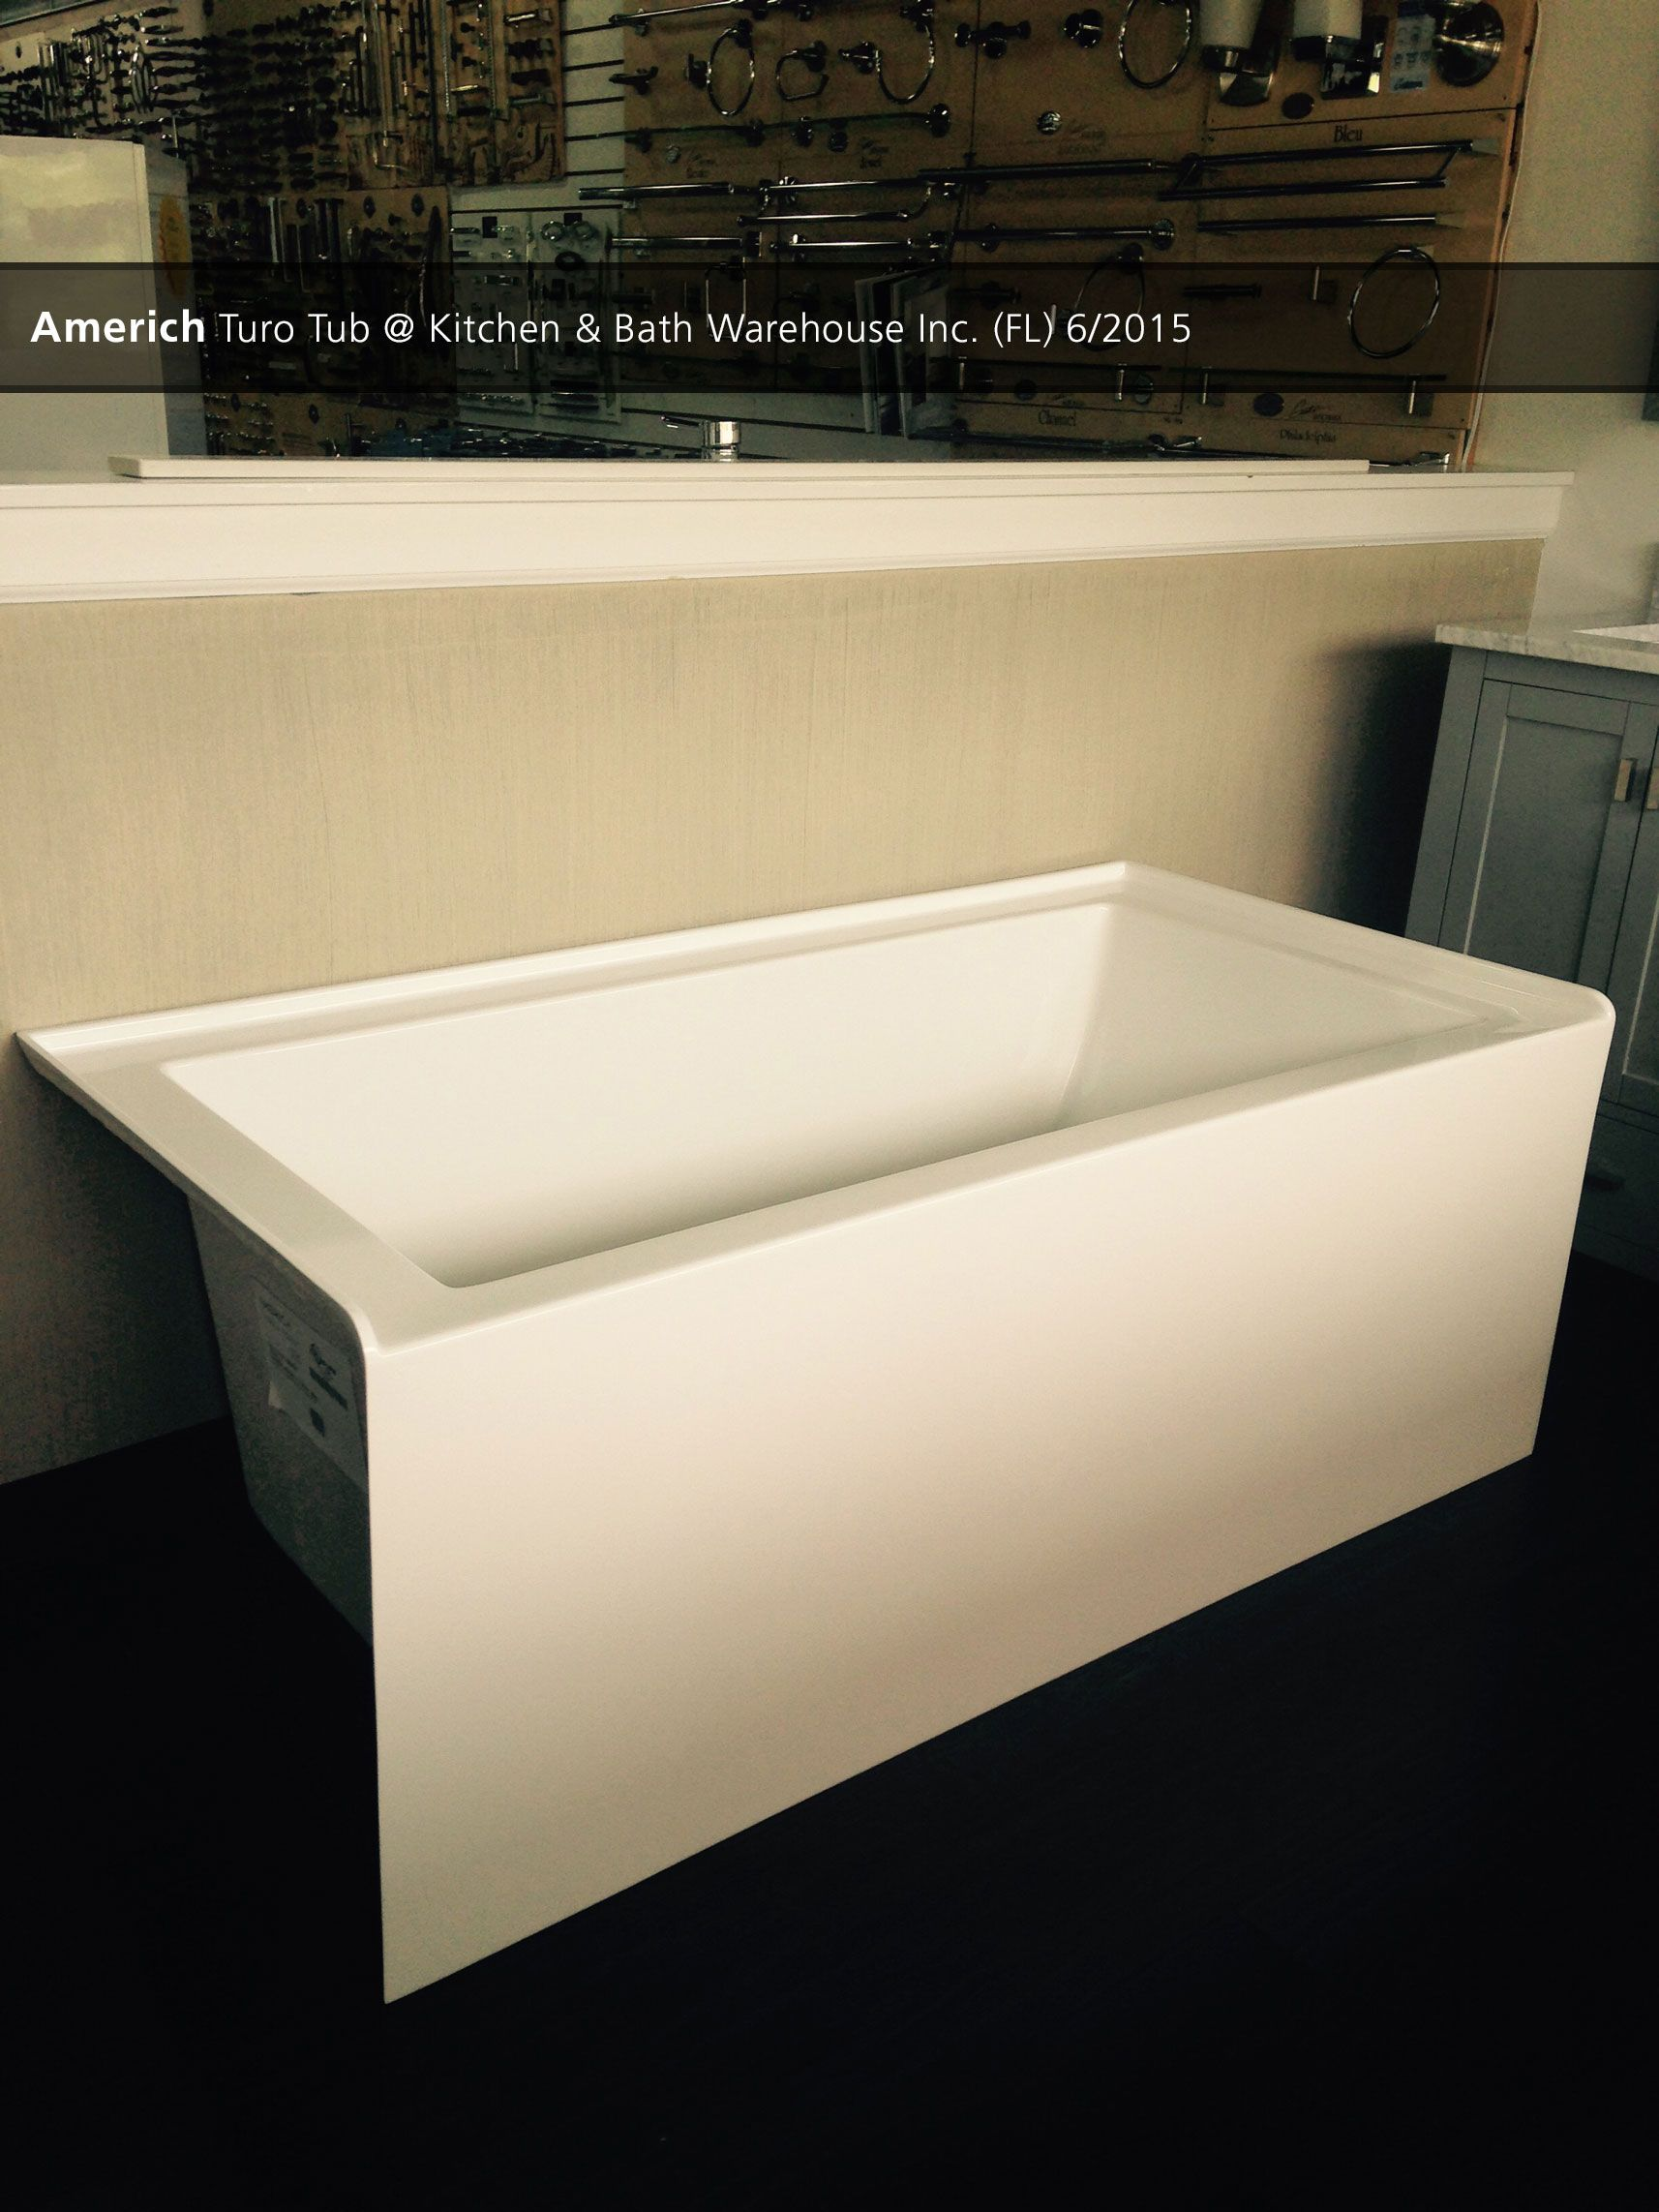 Americh Turo Tub Kitchen Bath Warehouse Inc Fl 6 2015 Showroom Displays Bathroom